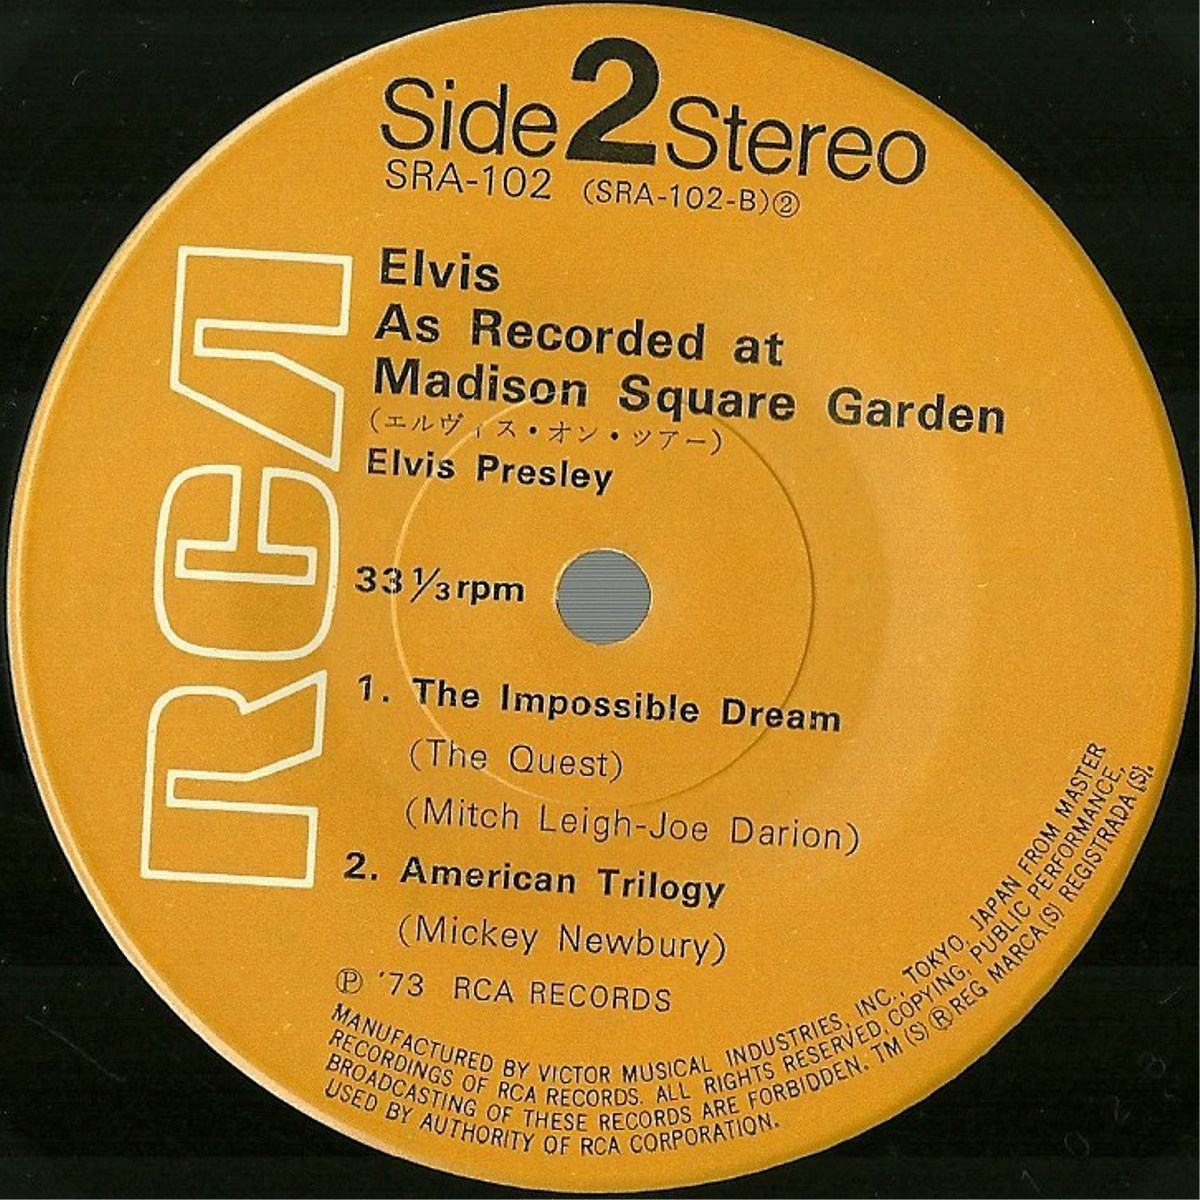 ELVIS - AS RECORDED AT MADISON SQUARE GARDEN Sra-102dy9rni